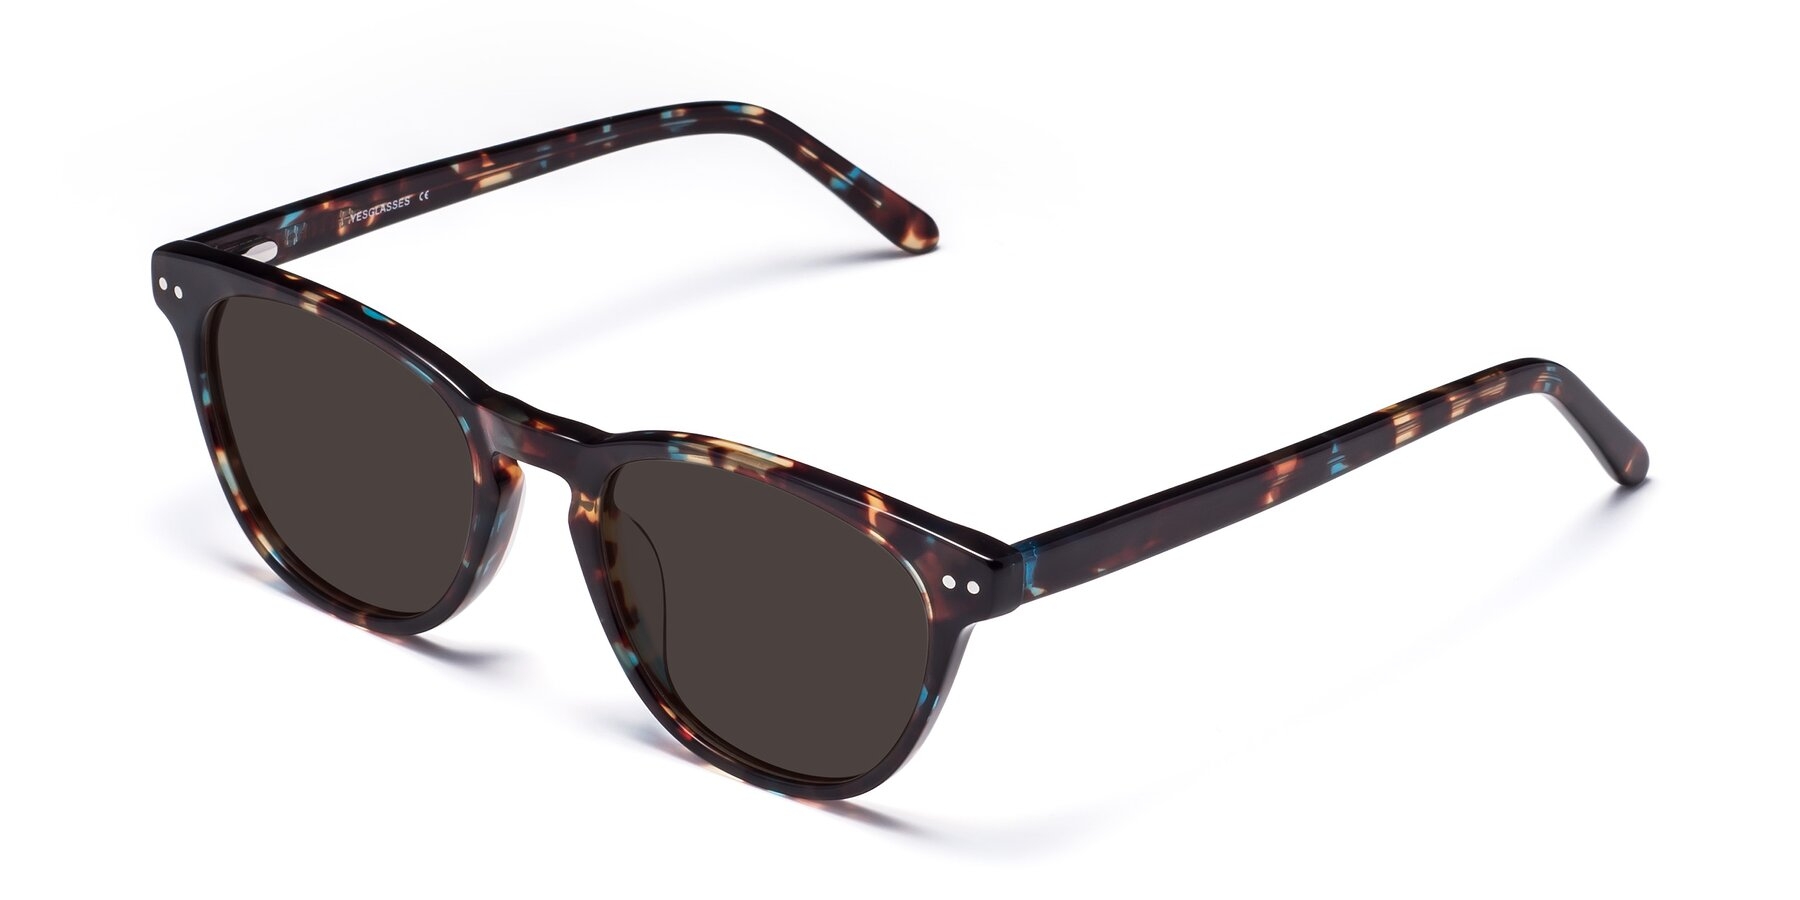 Angle of Blaze in Tortoise-Blue with Gray Tinted Lenses